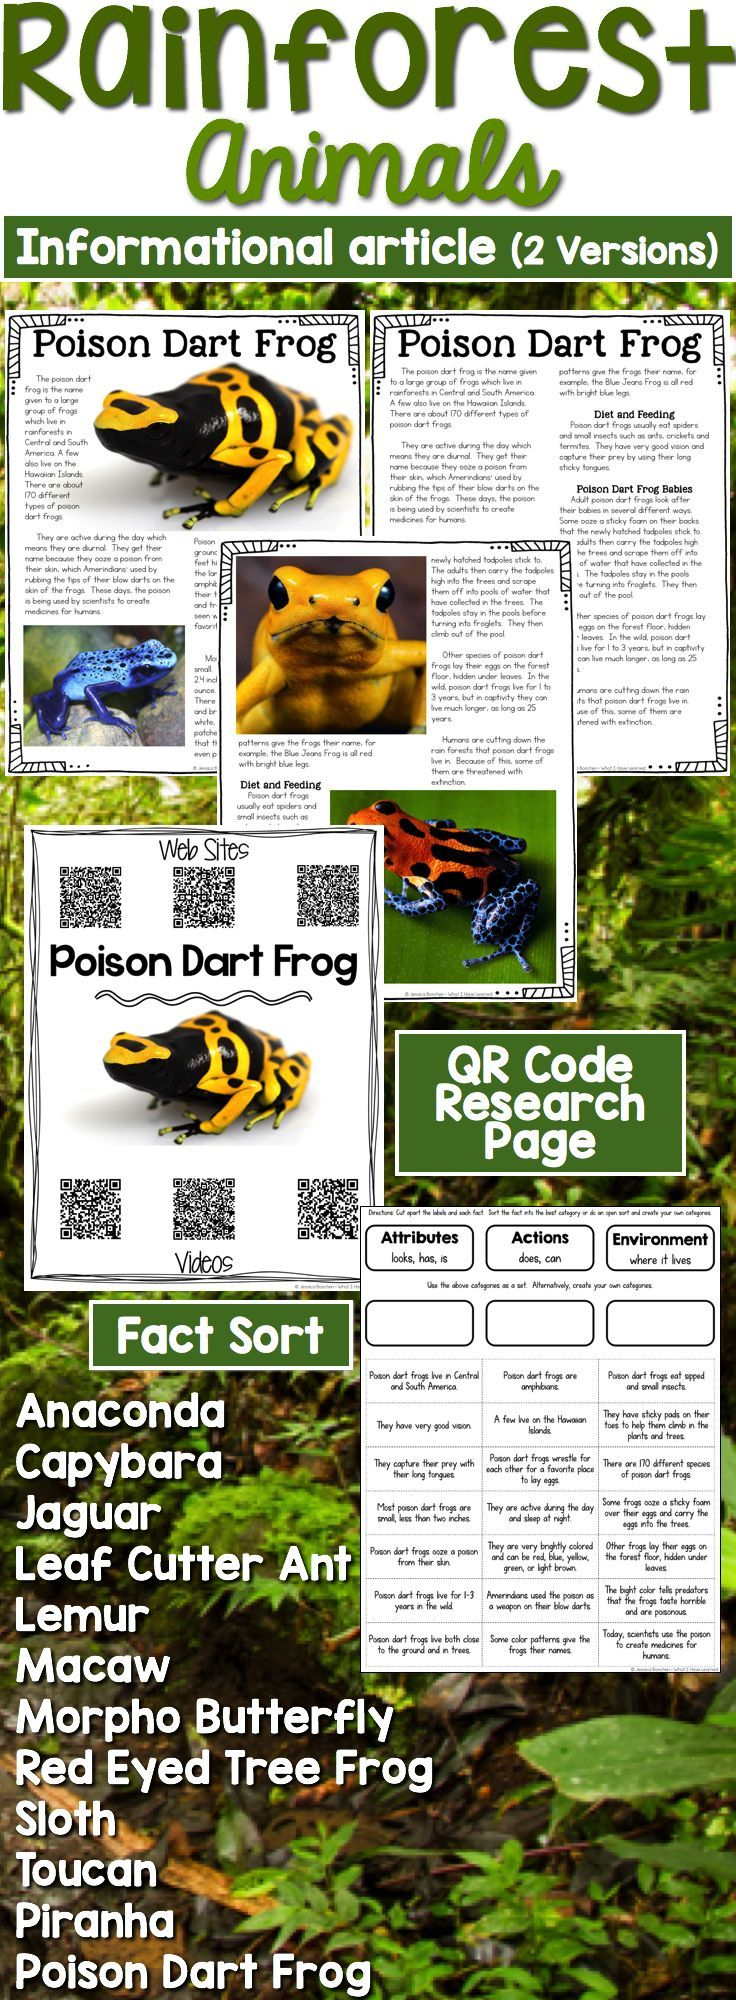 Rainforest Animals Article, QR Code Research Page & Fact